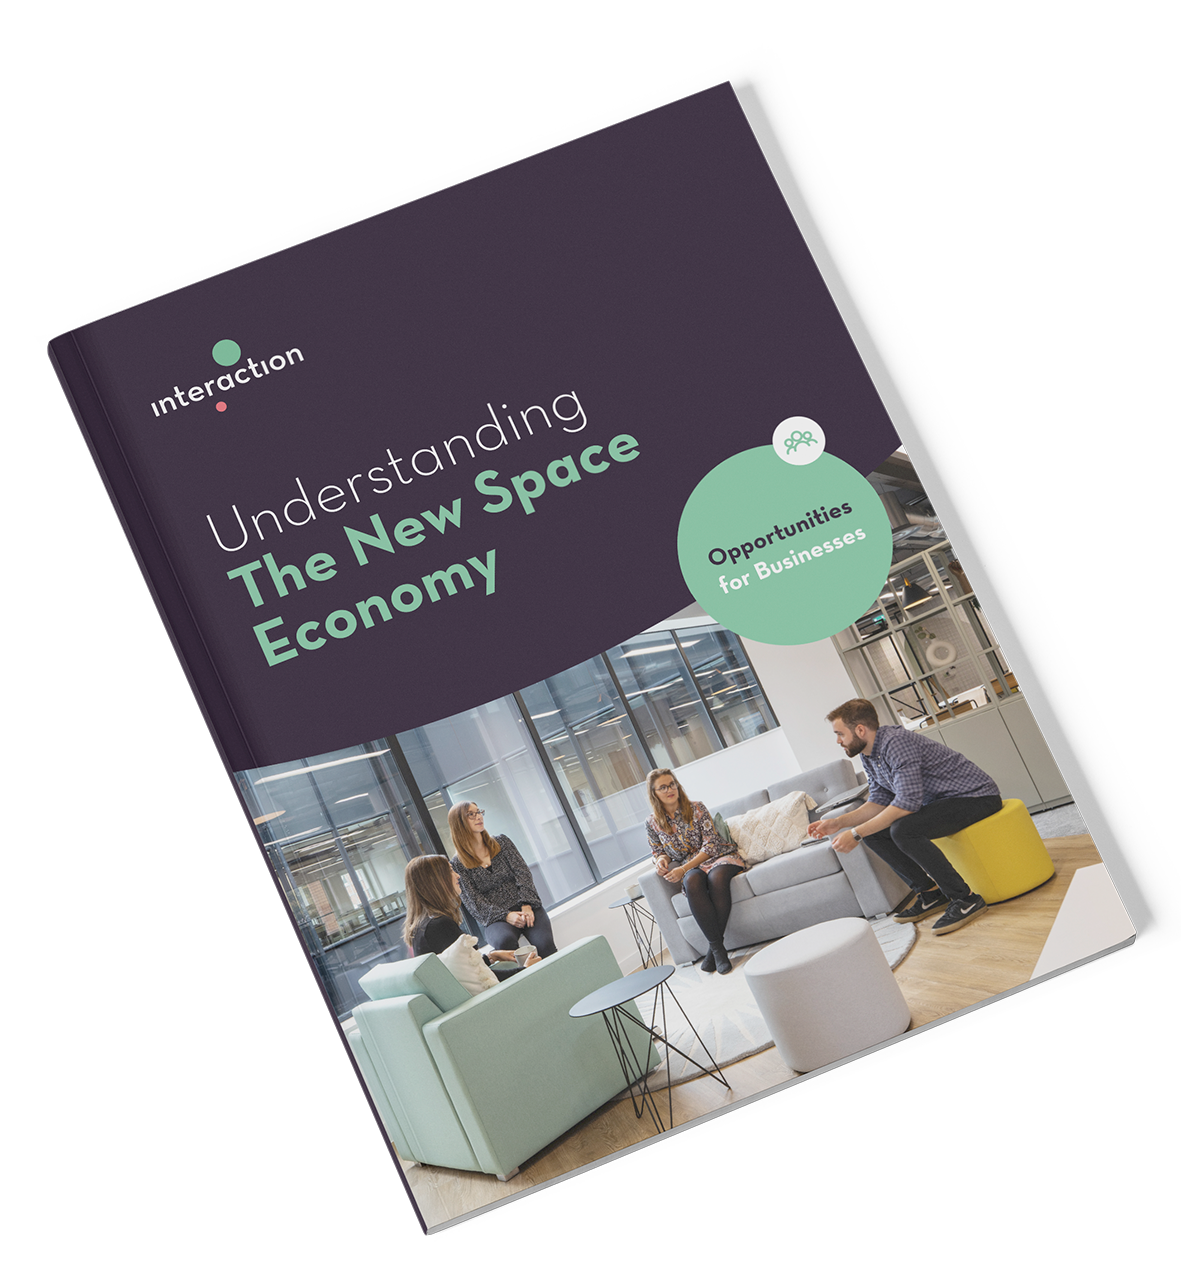 Opportunities for Businesses in the 'New Space Economy' [PDF Download] Image